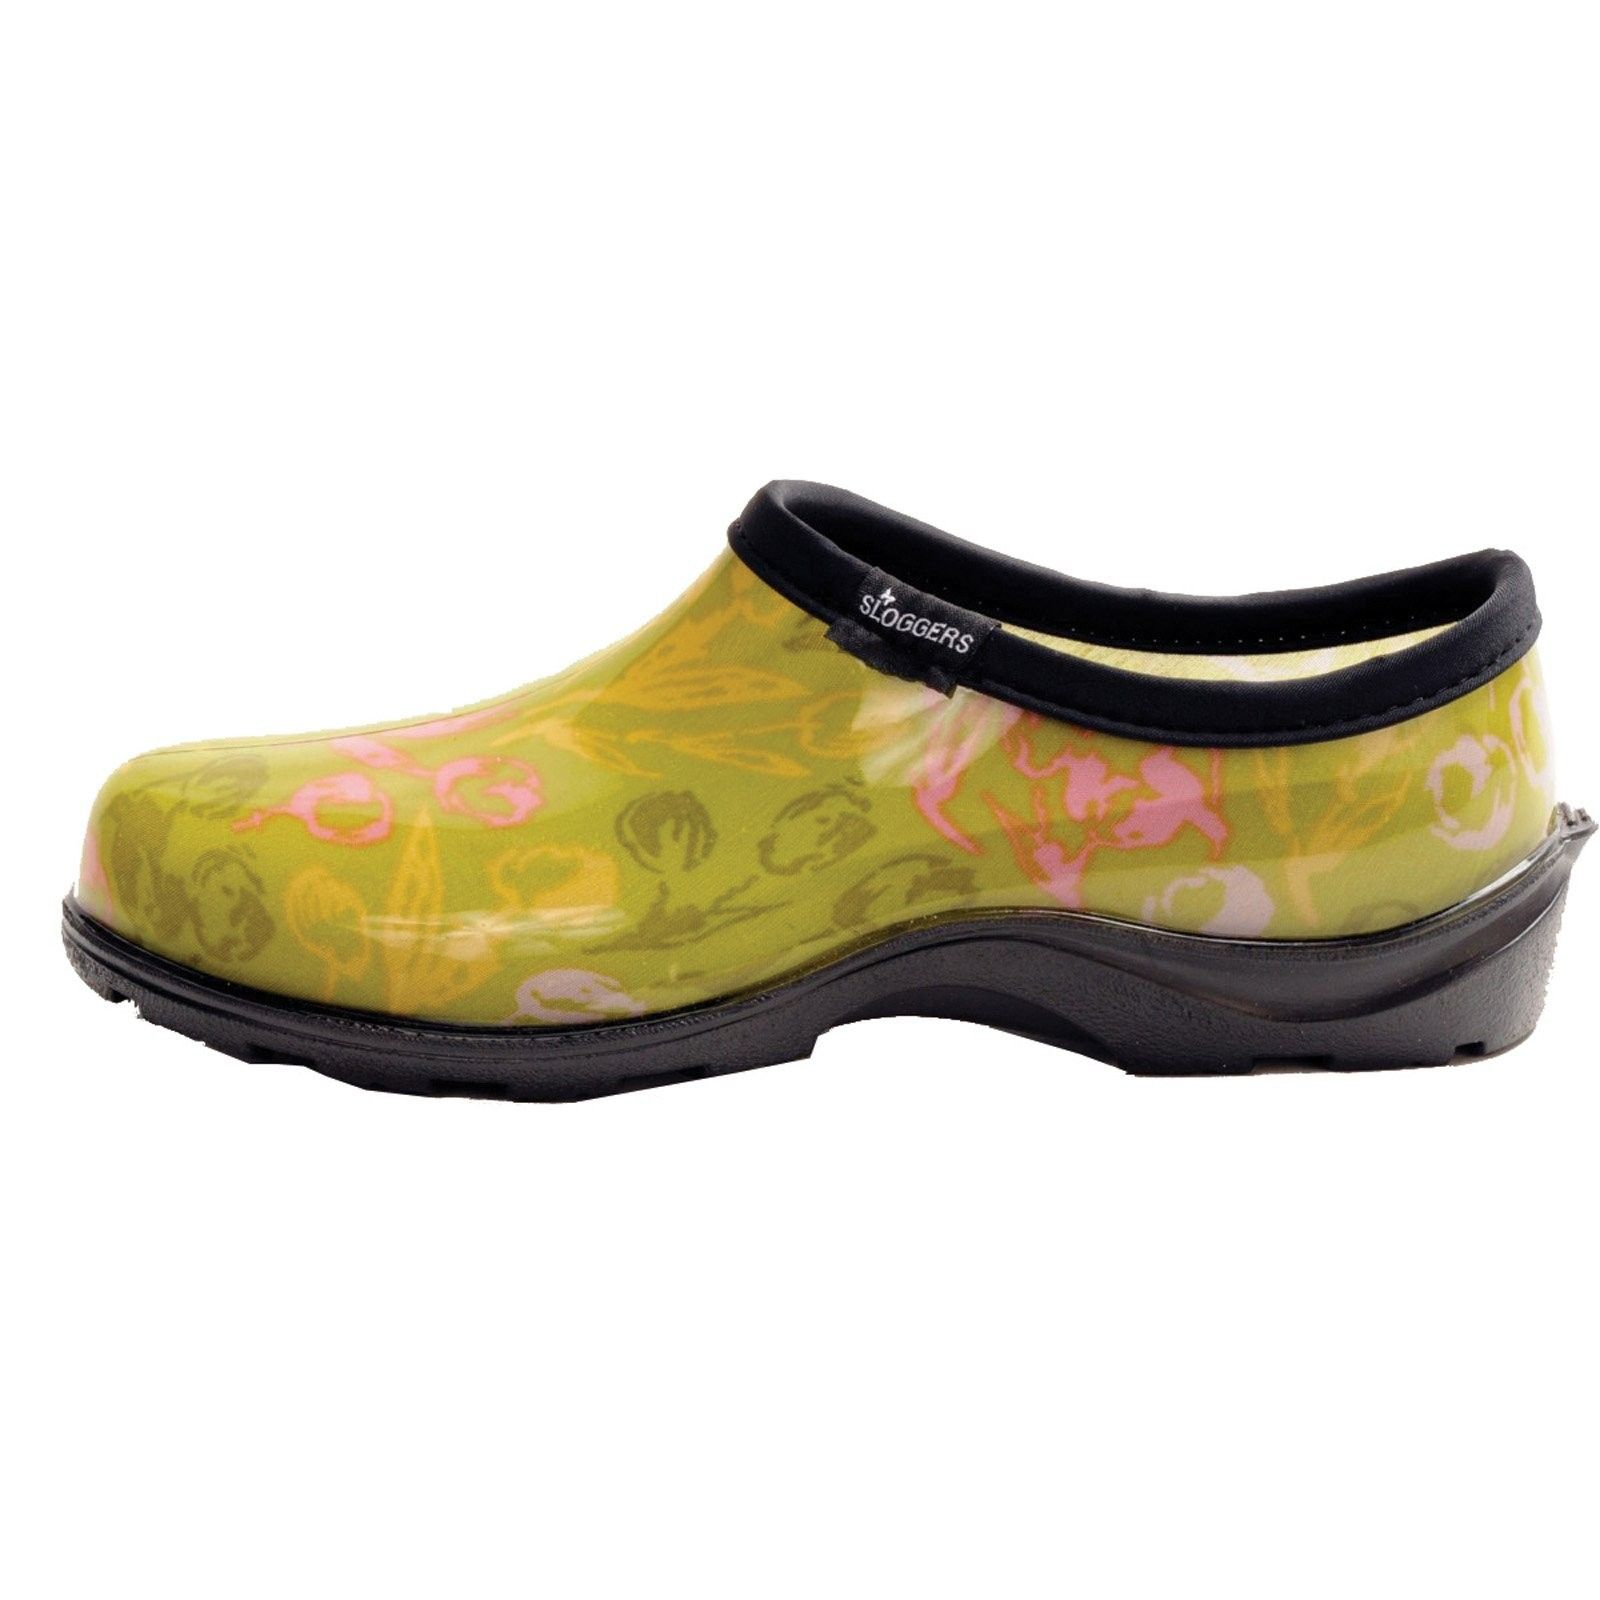 Sloggers Tulip Green Shoes Green shoes, Shoes, Rubber clogs